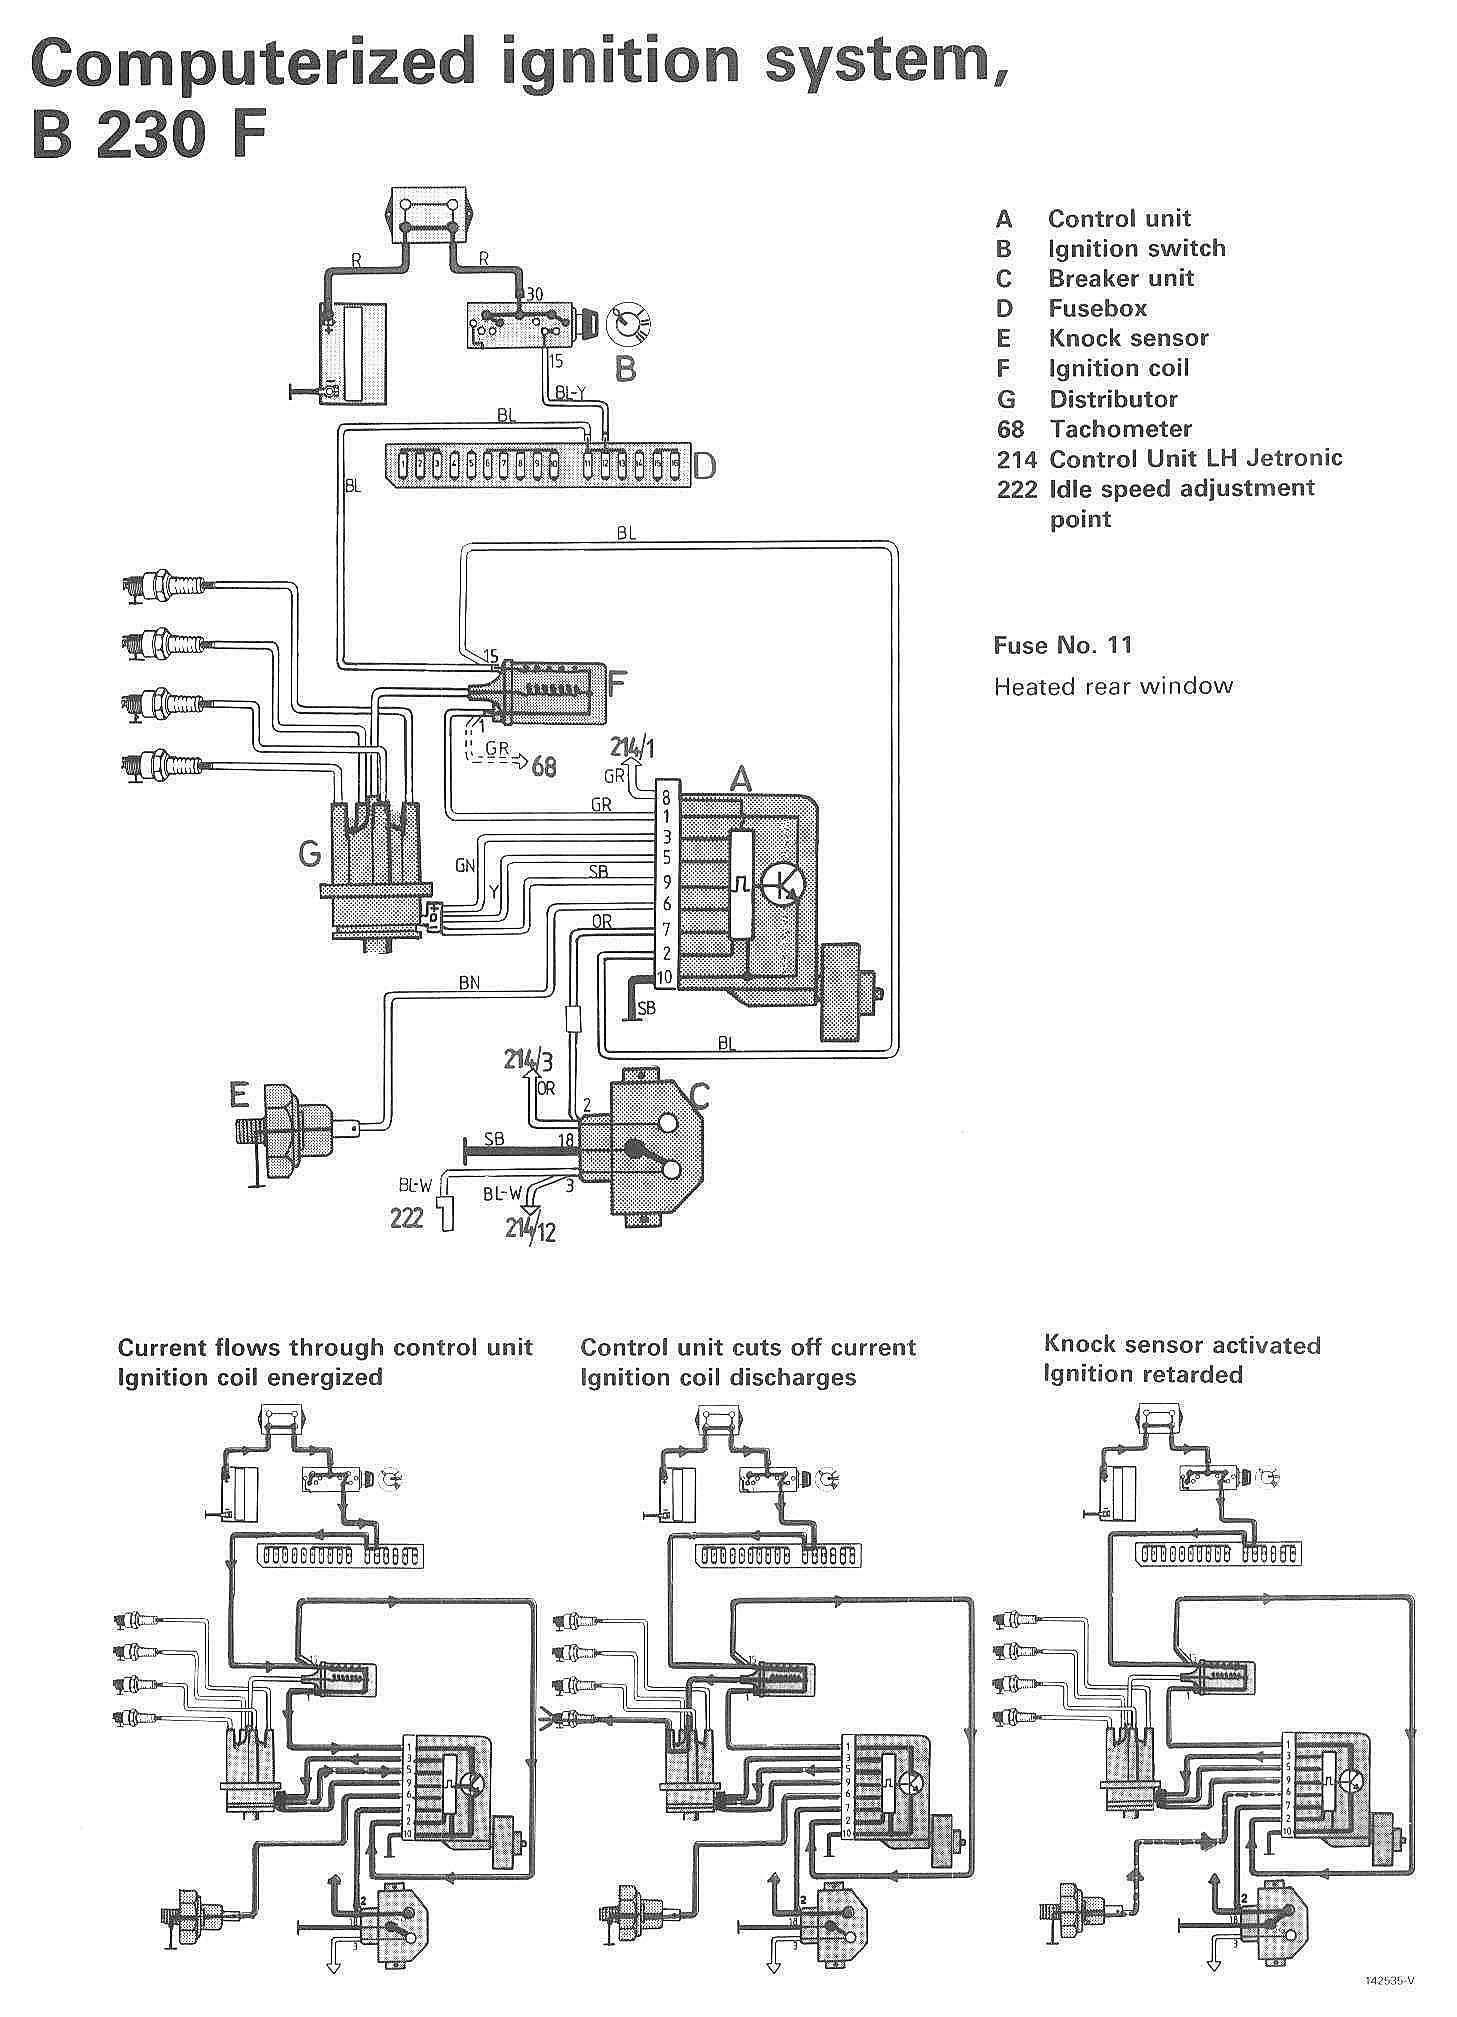 1985 Volvo Wagon 240 Wiring Diagrams Data 740 Images Gallery